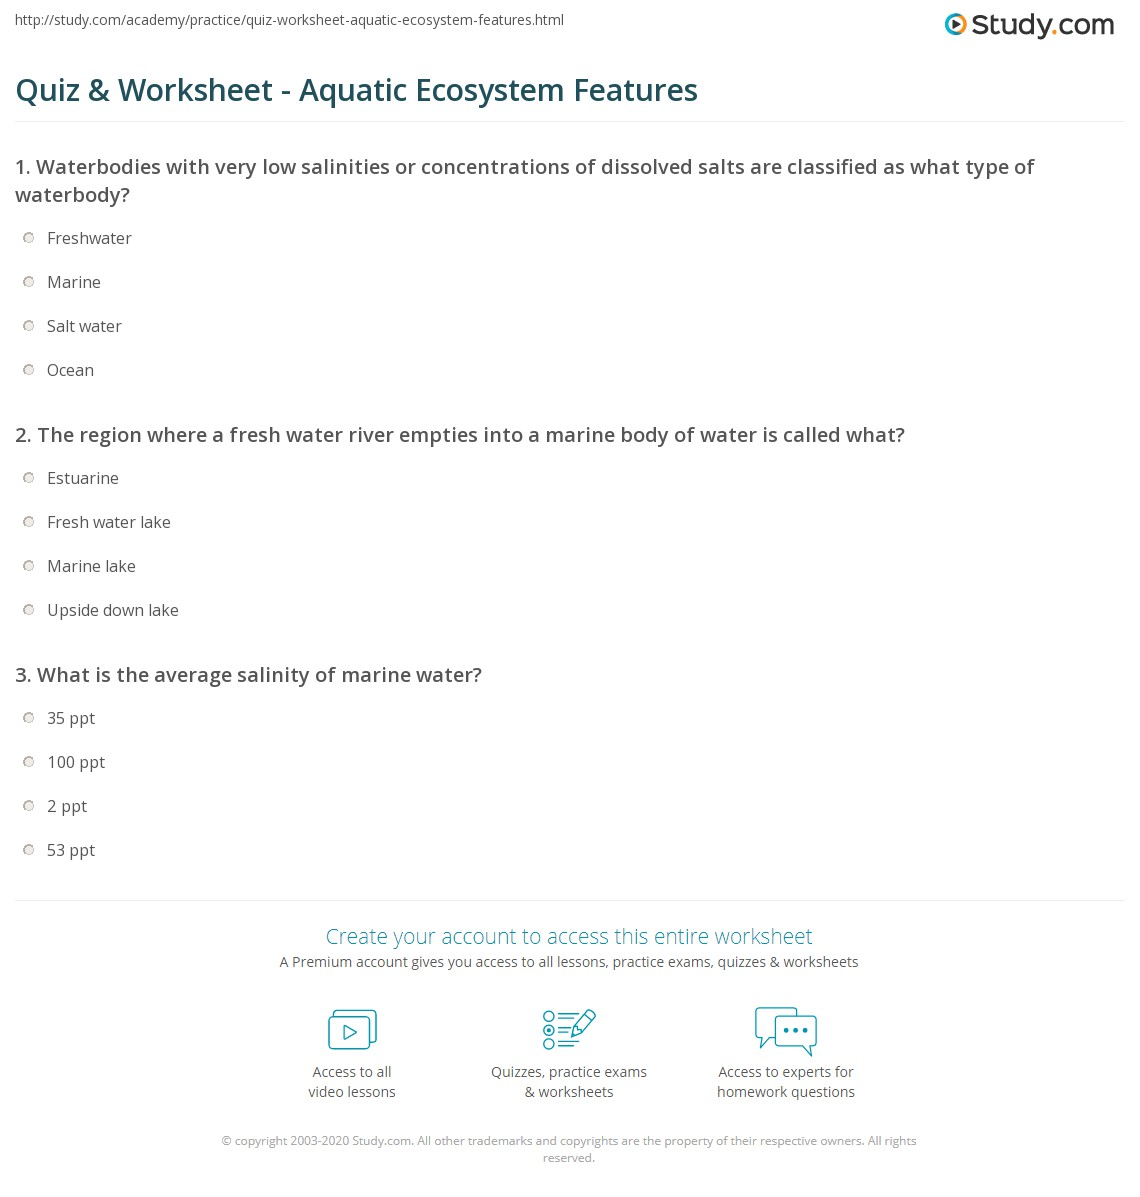 Aquatic ecosystems worksheet